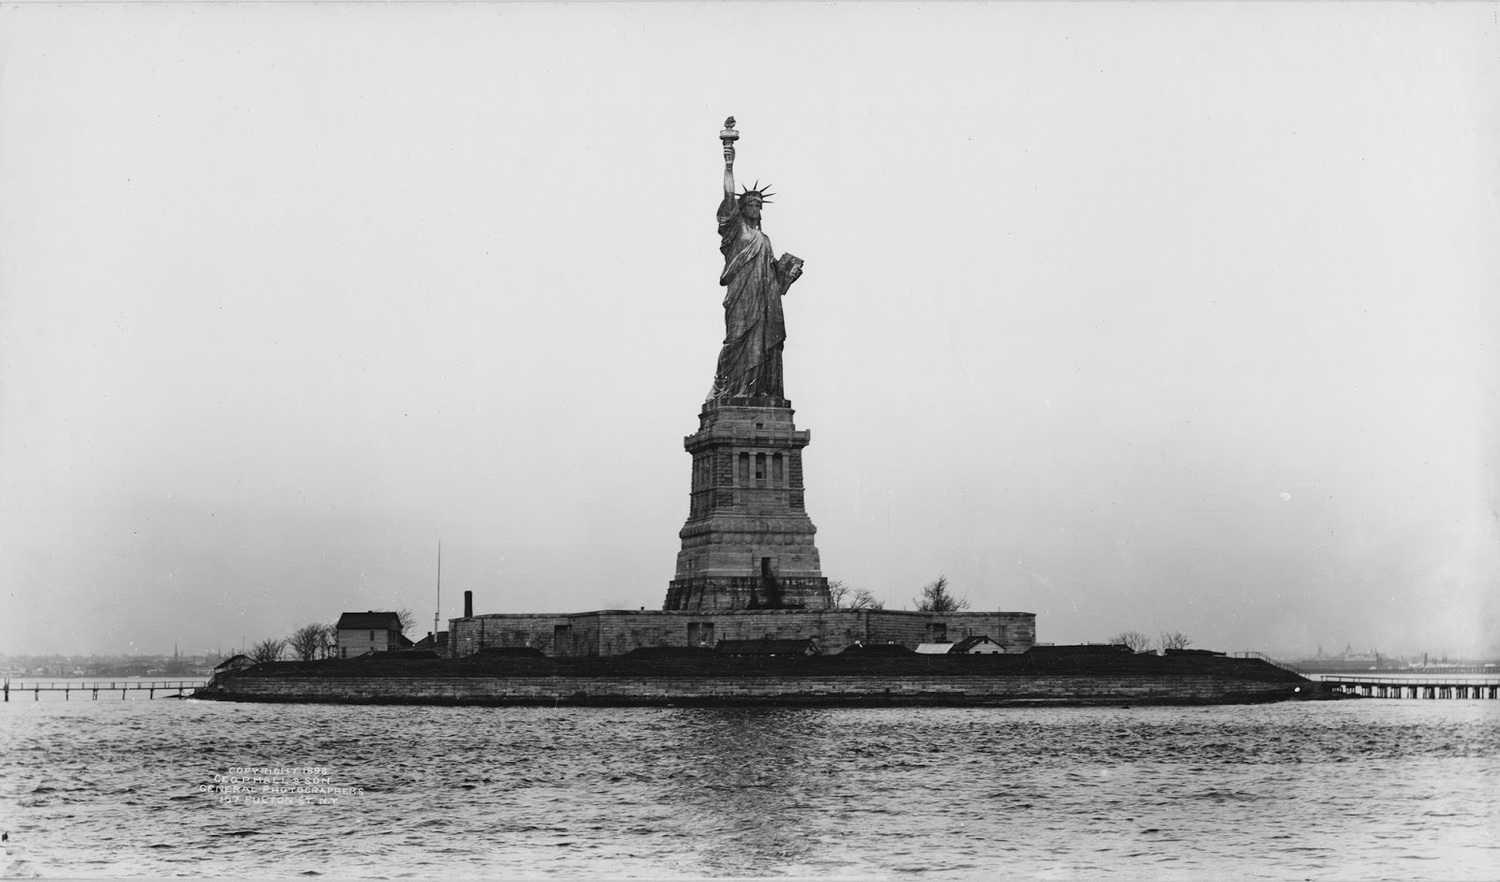 The Statue of Liberty seen on Liberty Island in New York Harbor, about a decade after her arrival, in 1898.